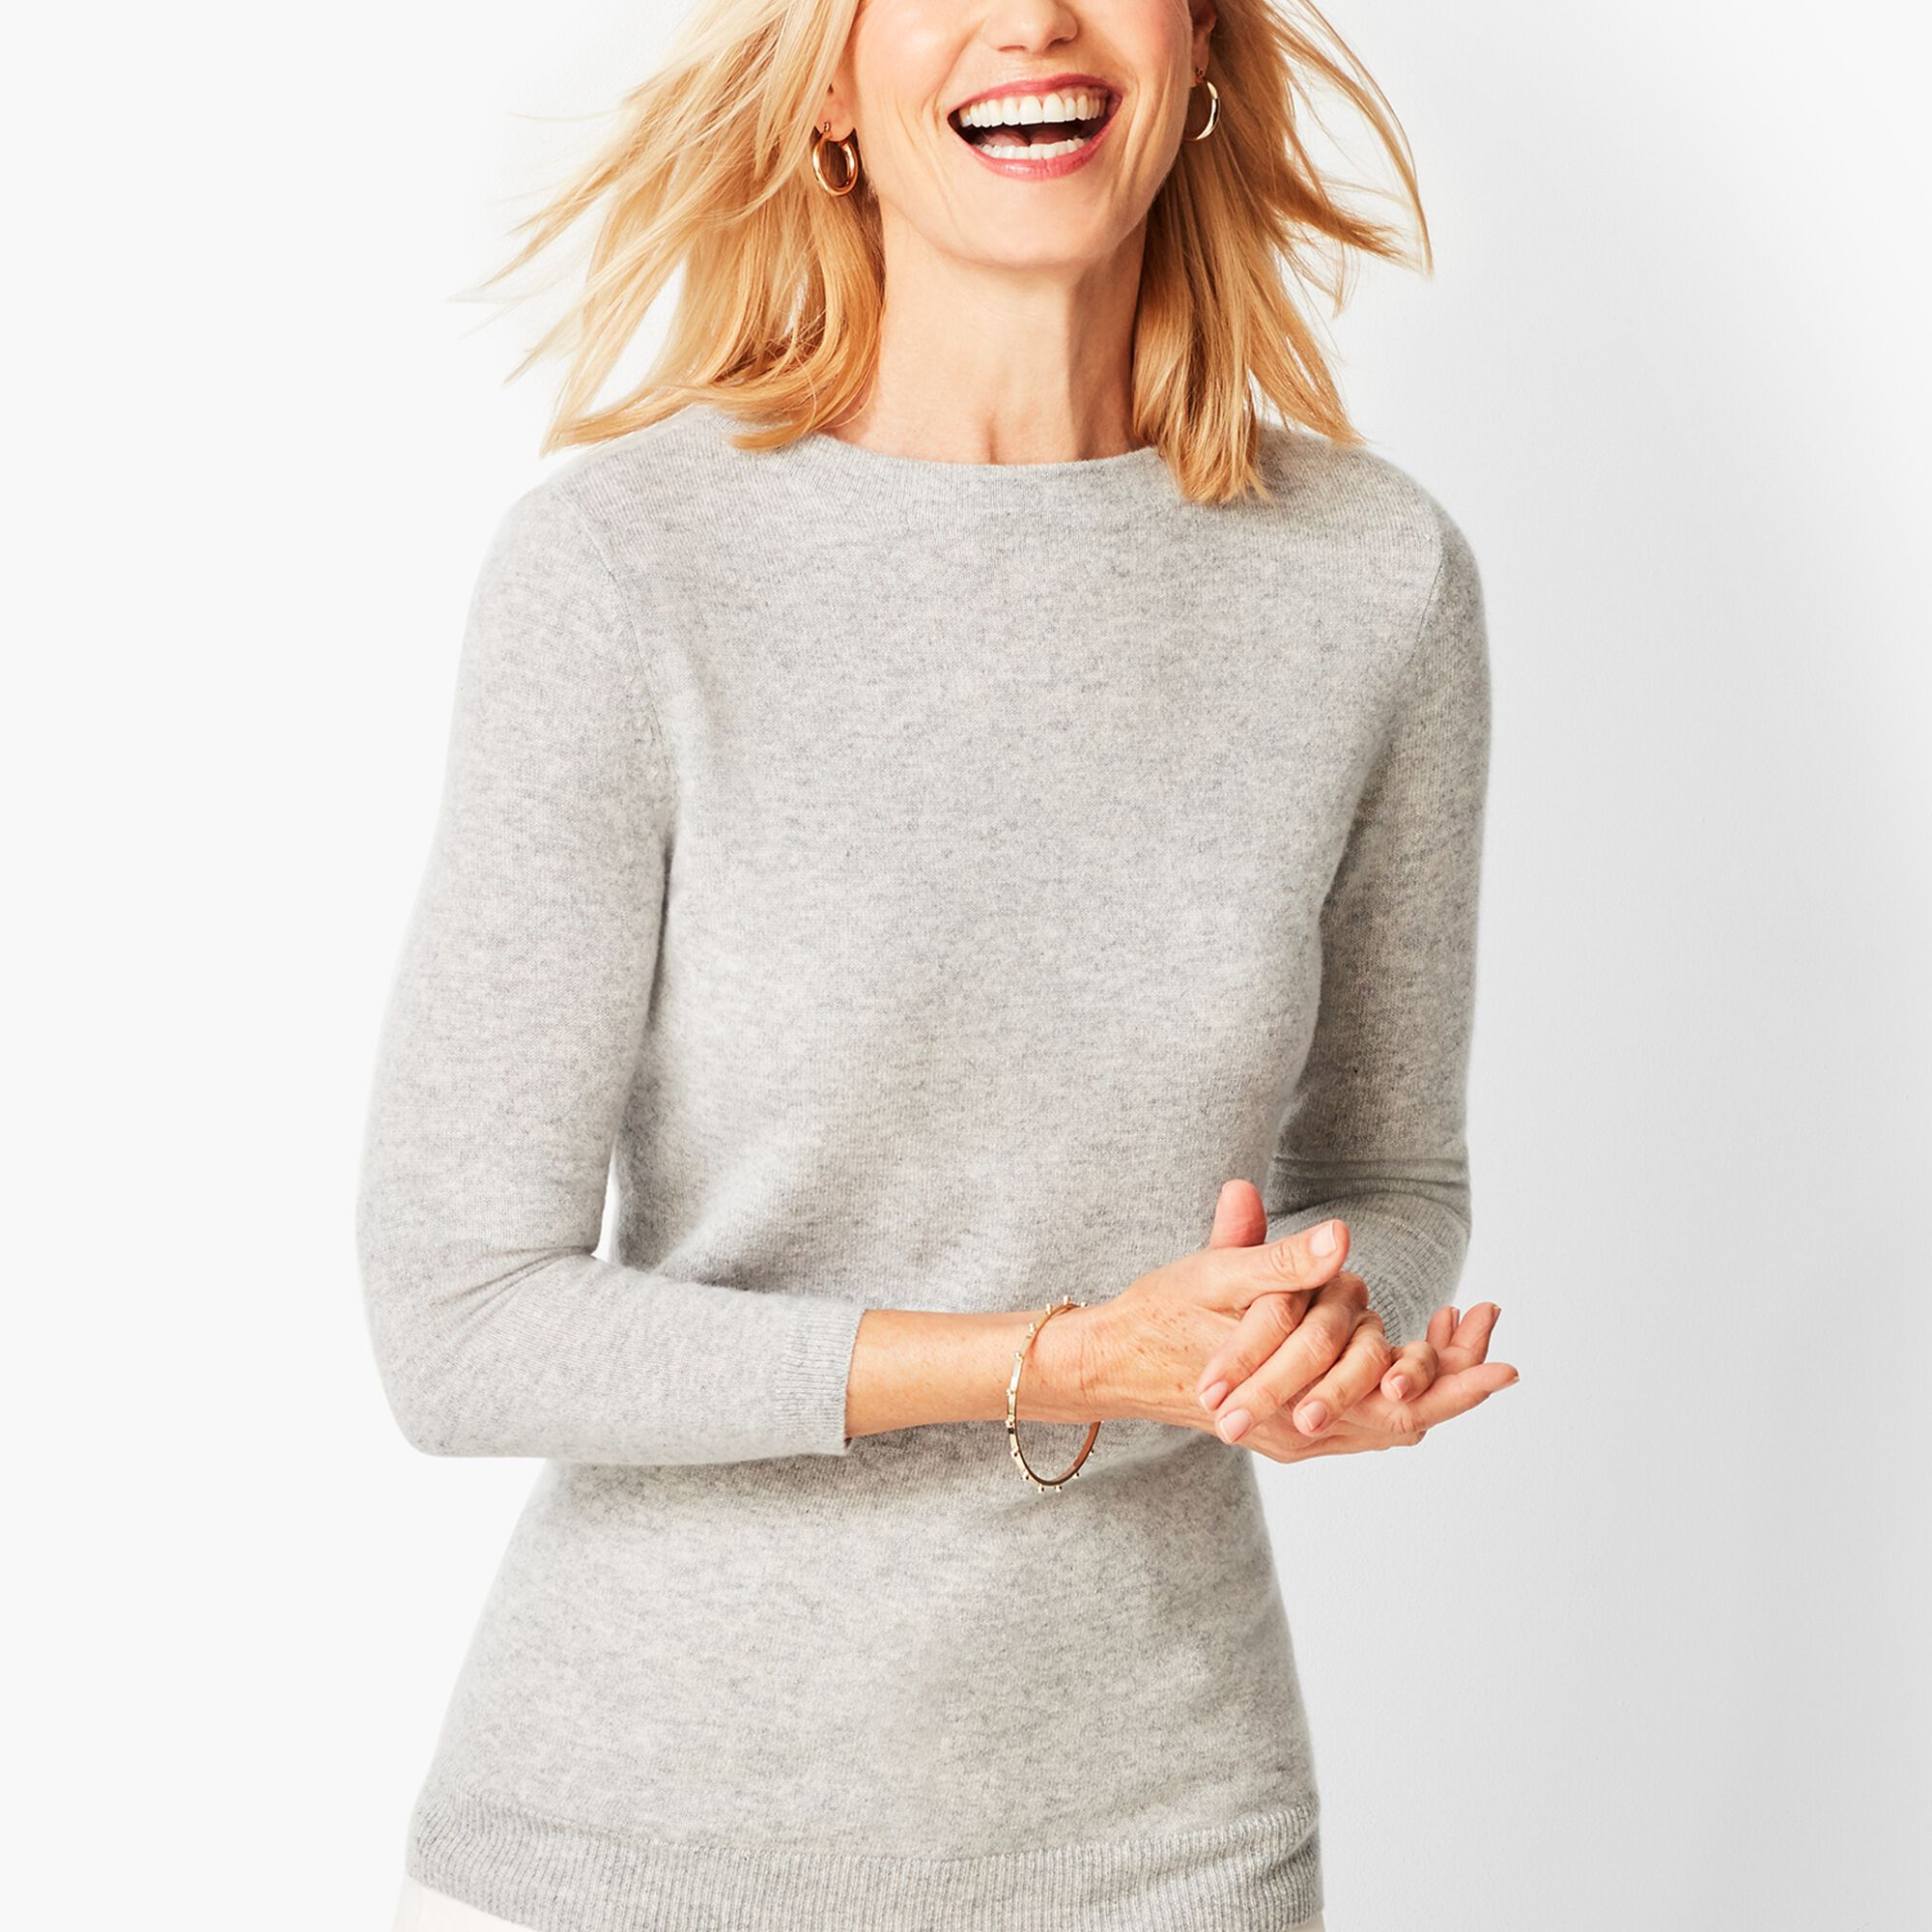 83160f6fbdd Audrey Cashmere Sweater - Solid